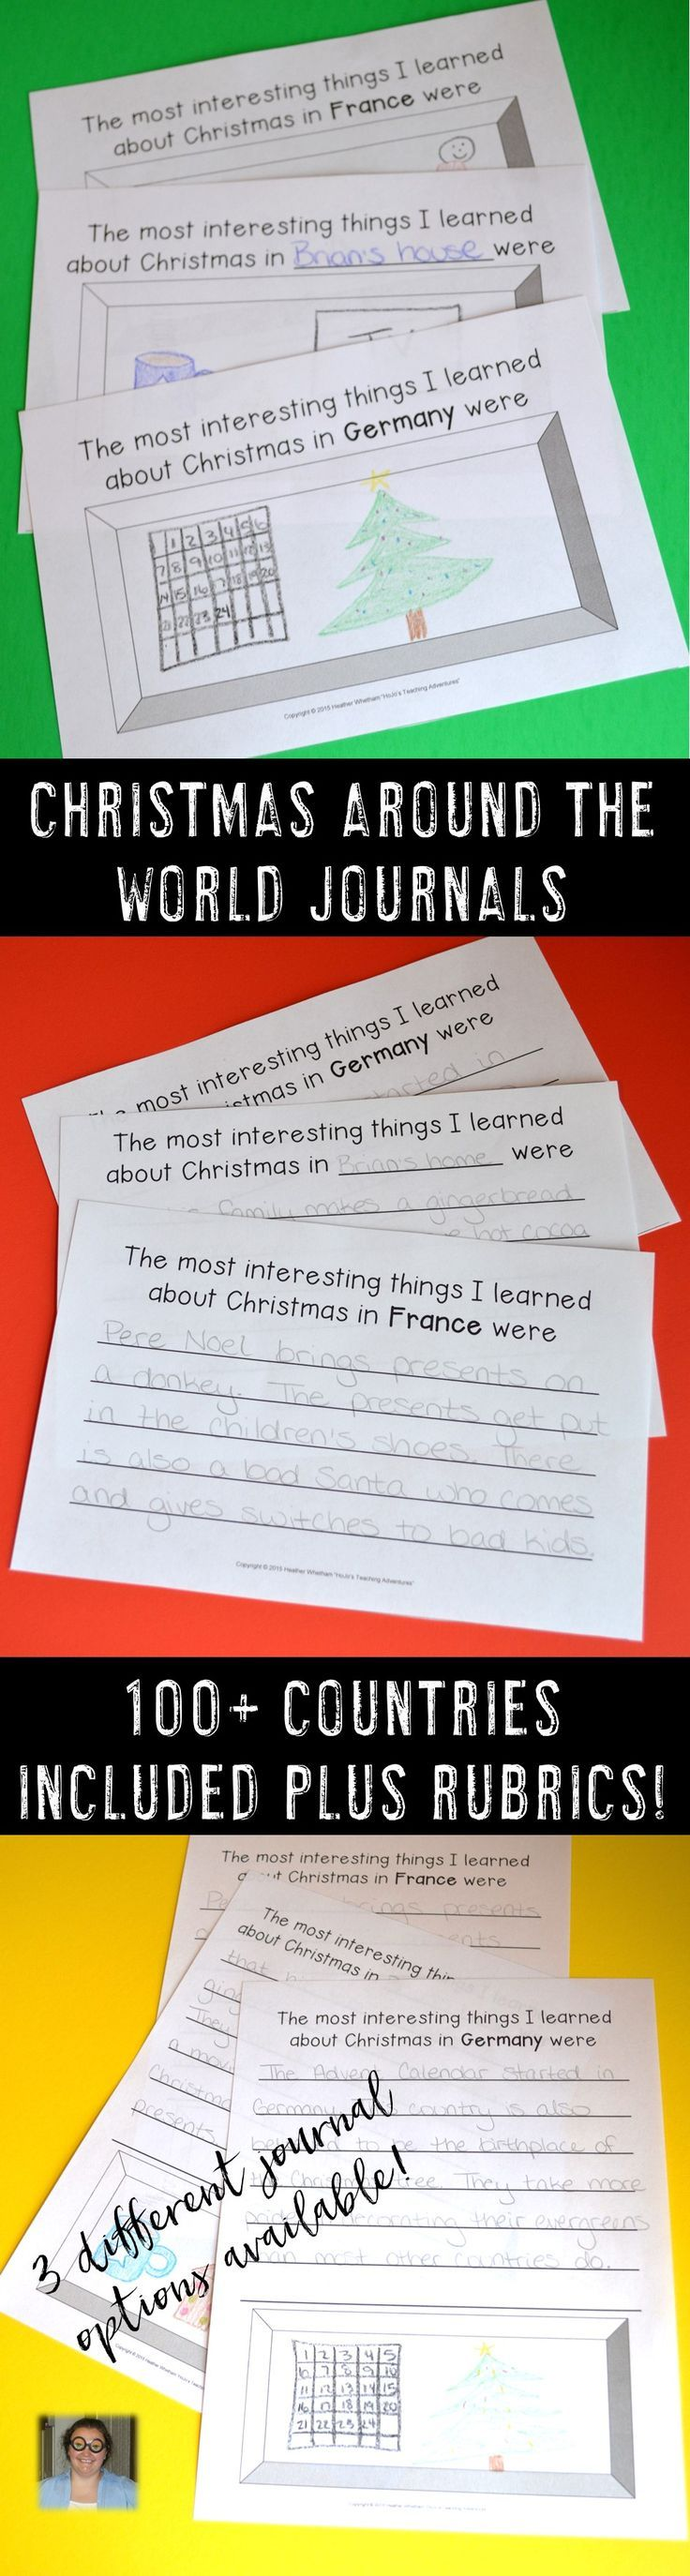 Christmas Around the World is a great activity for your Kindergarten